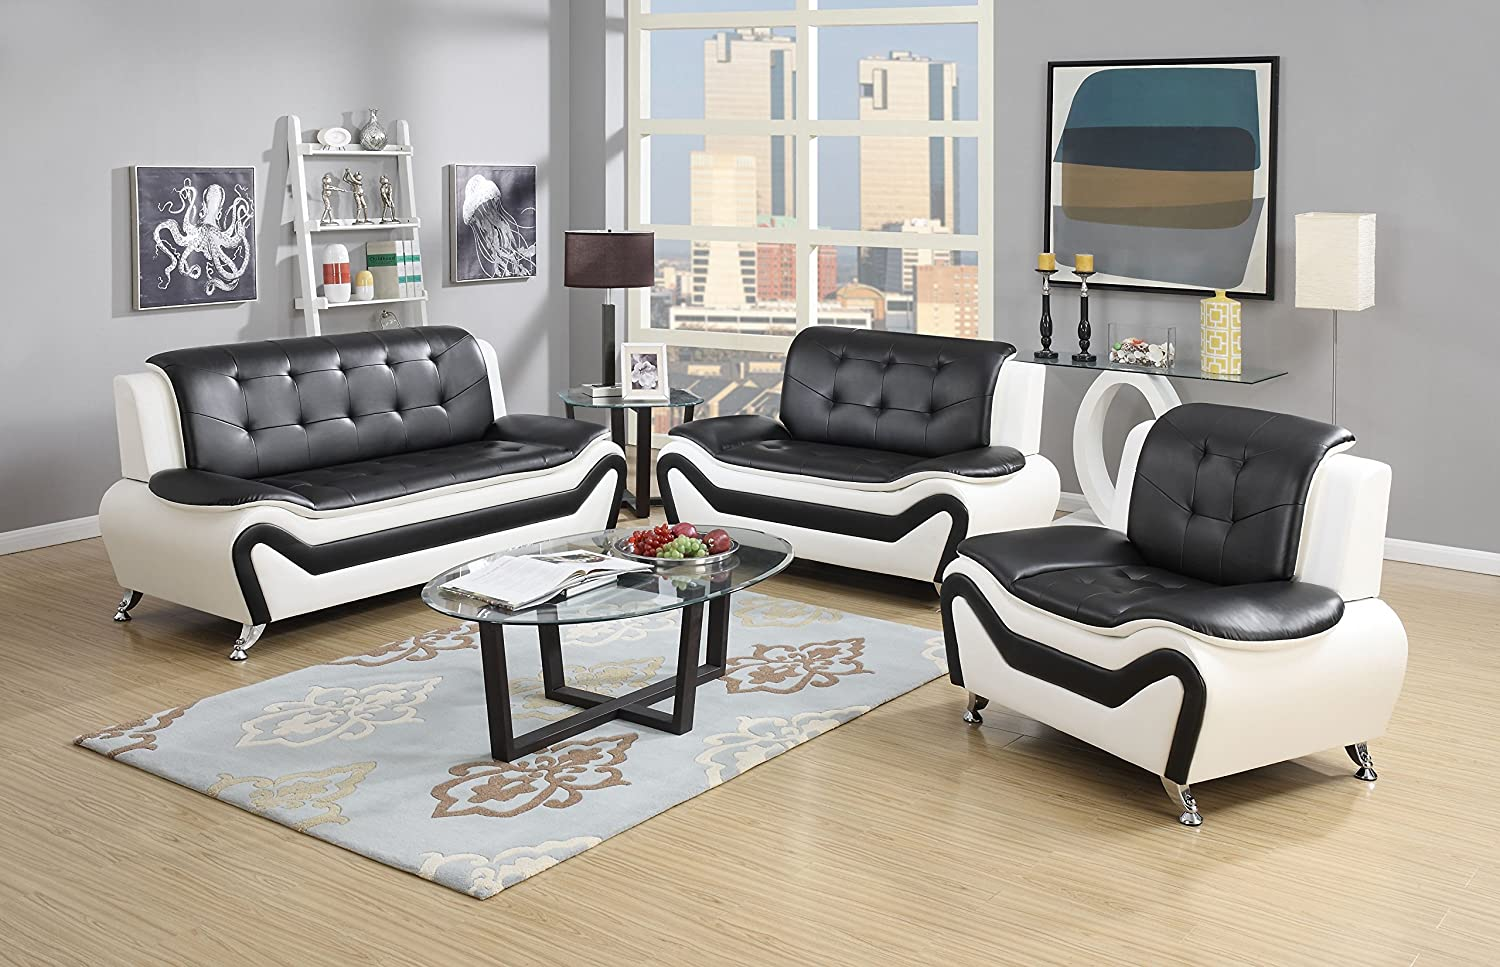 Amazon US Pride Furniture S5066 3PC 3 Piece Modern Bonded Leather Sofa Set Kitchen Dining